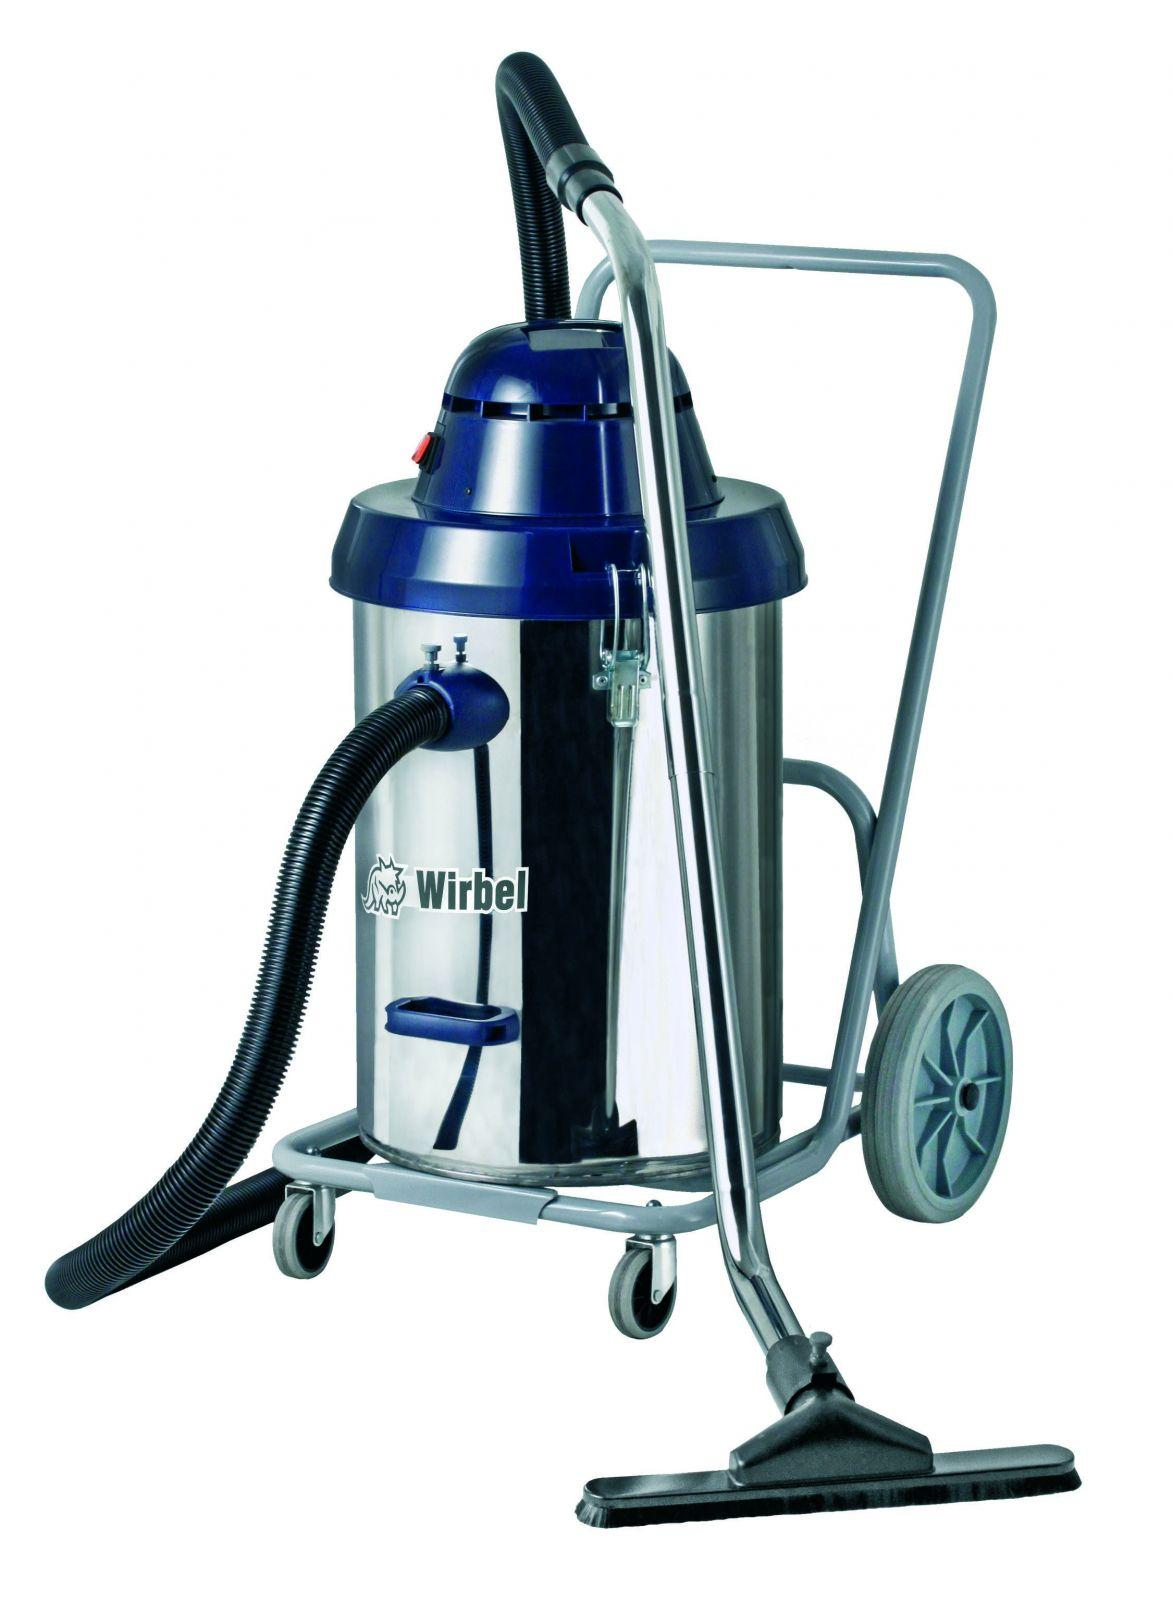 935 Inox Wet & Dry Vacuum with Castors